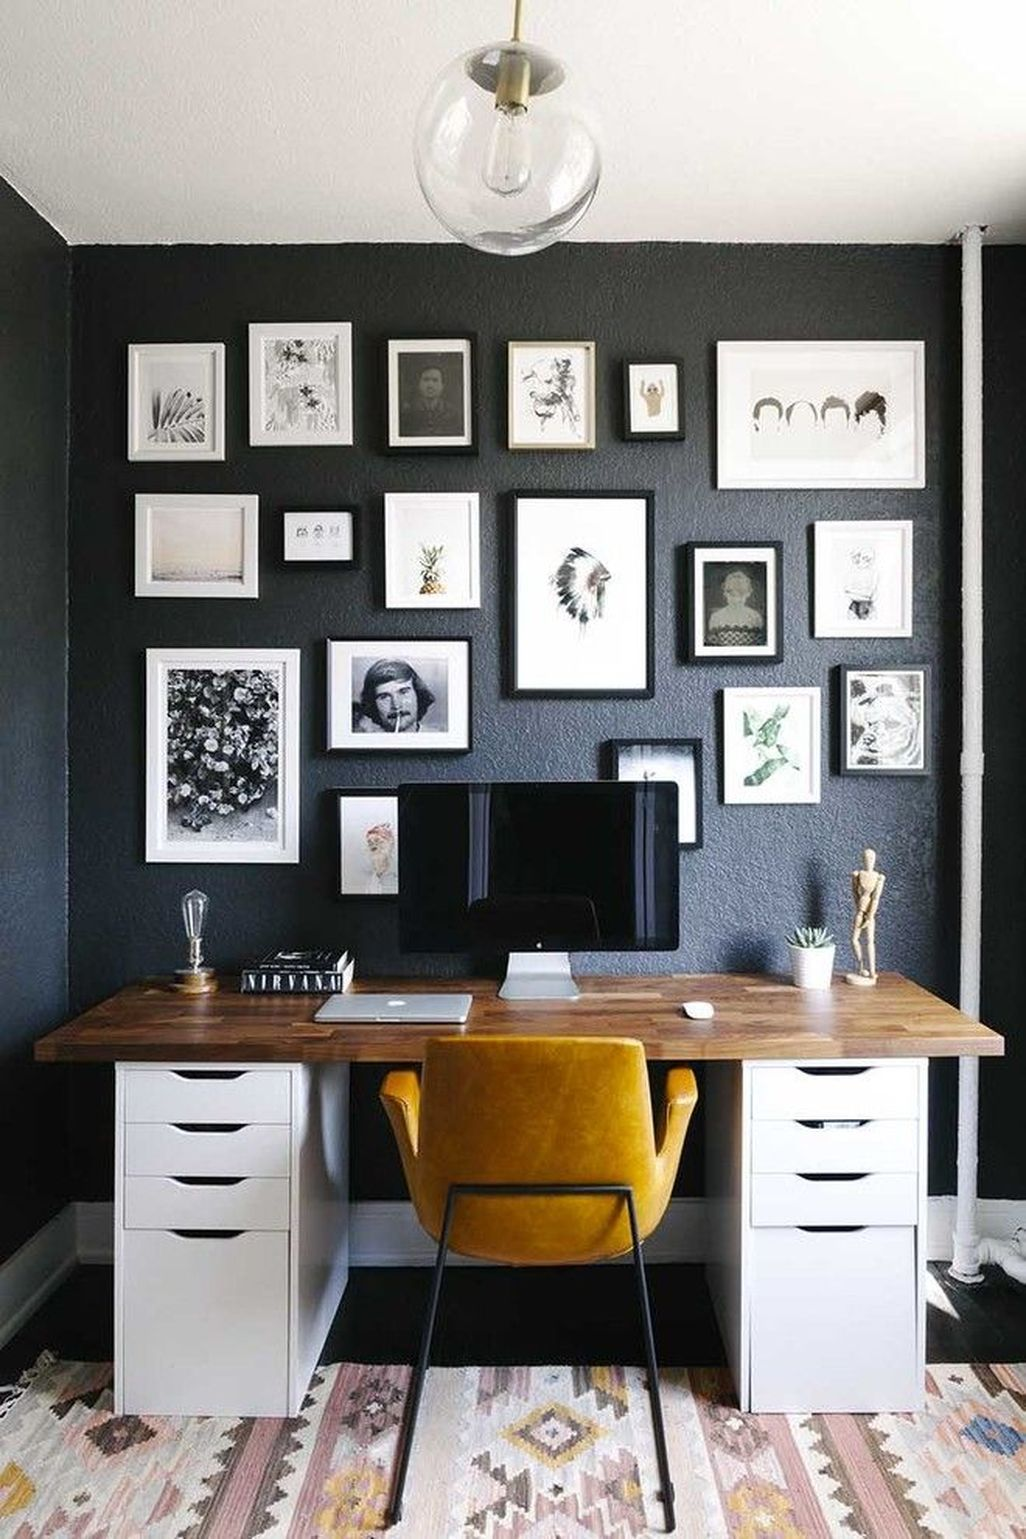 46 Modern Small Apartment Decorating Ideas On A Budget Home Office Decor Small Space Design Home Office Space